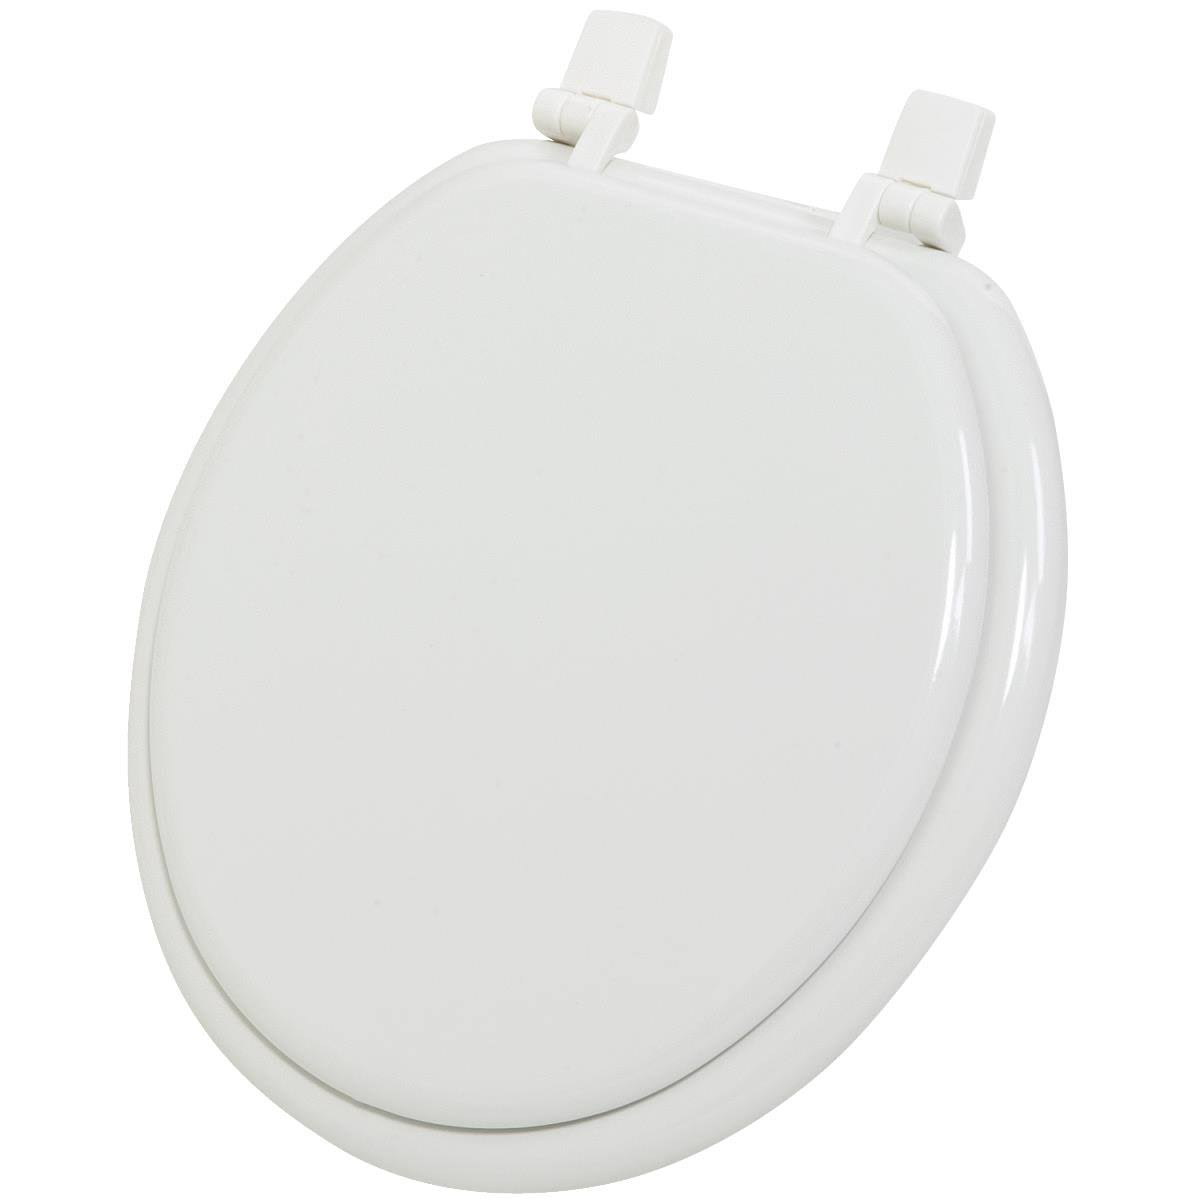 Do it Best Imports Round Wood Toilet Seat - White